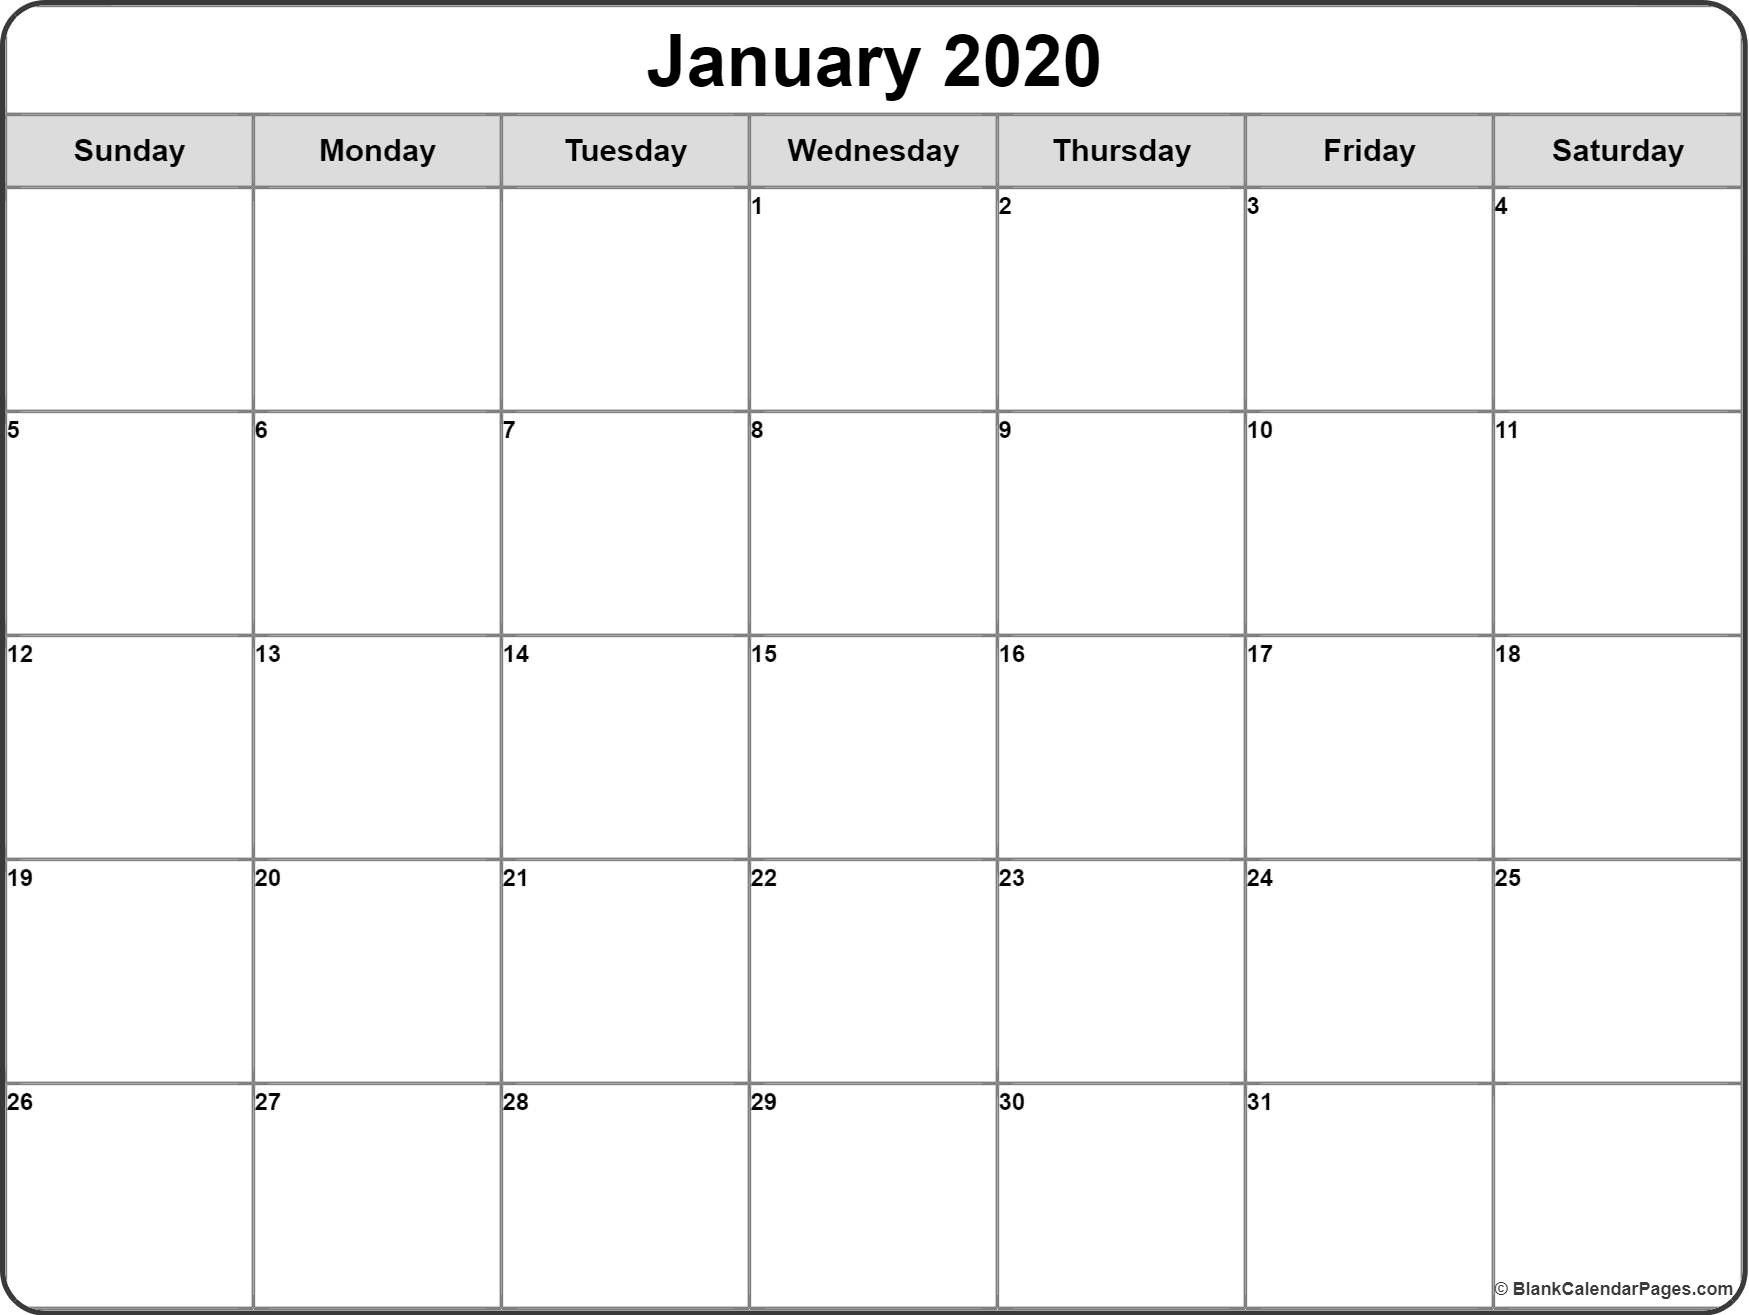 January 2020 Calendar January 2020 Blank Monthly Calendar throughout Monthly Fill In Calendar 2020